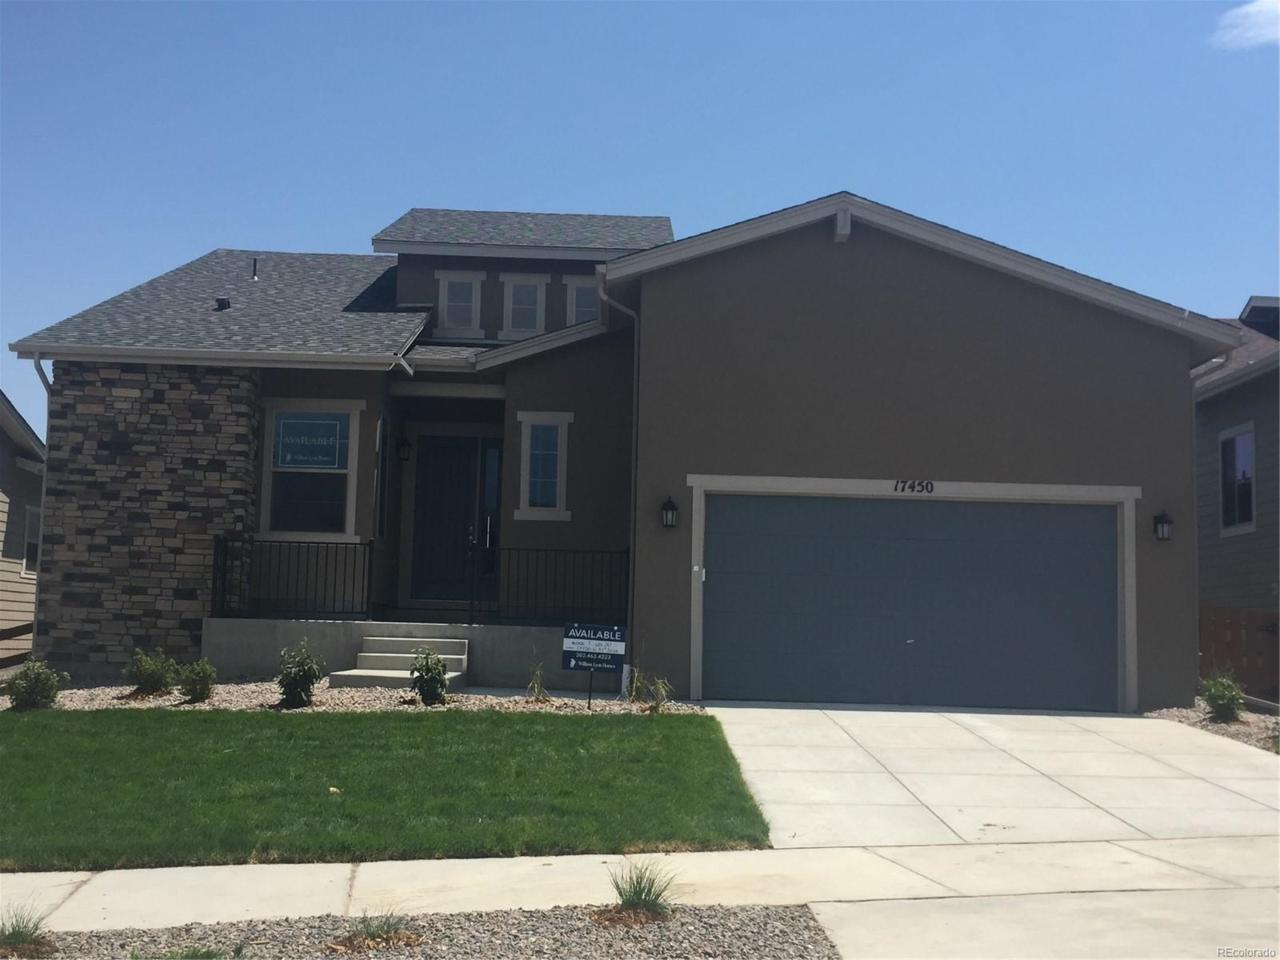 17450 W 94th Drive, Arvada, CO 80007 (MLS #8799222) :: 8z Real Estate